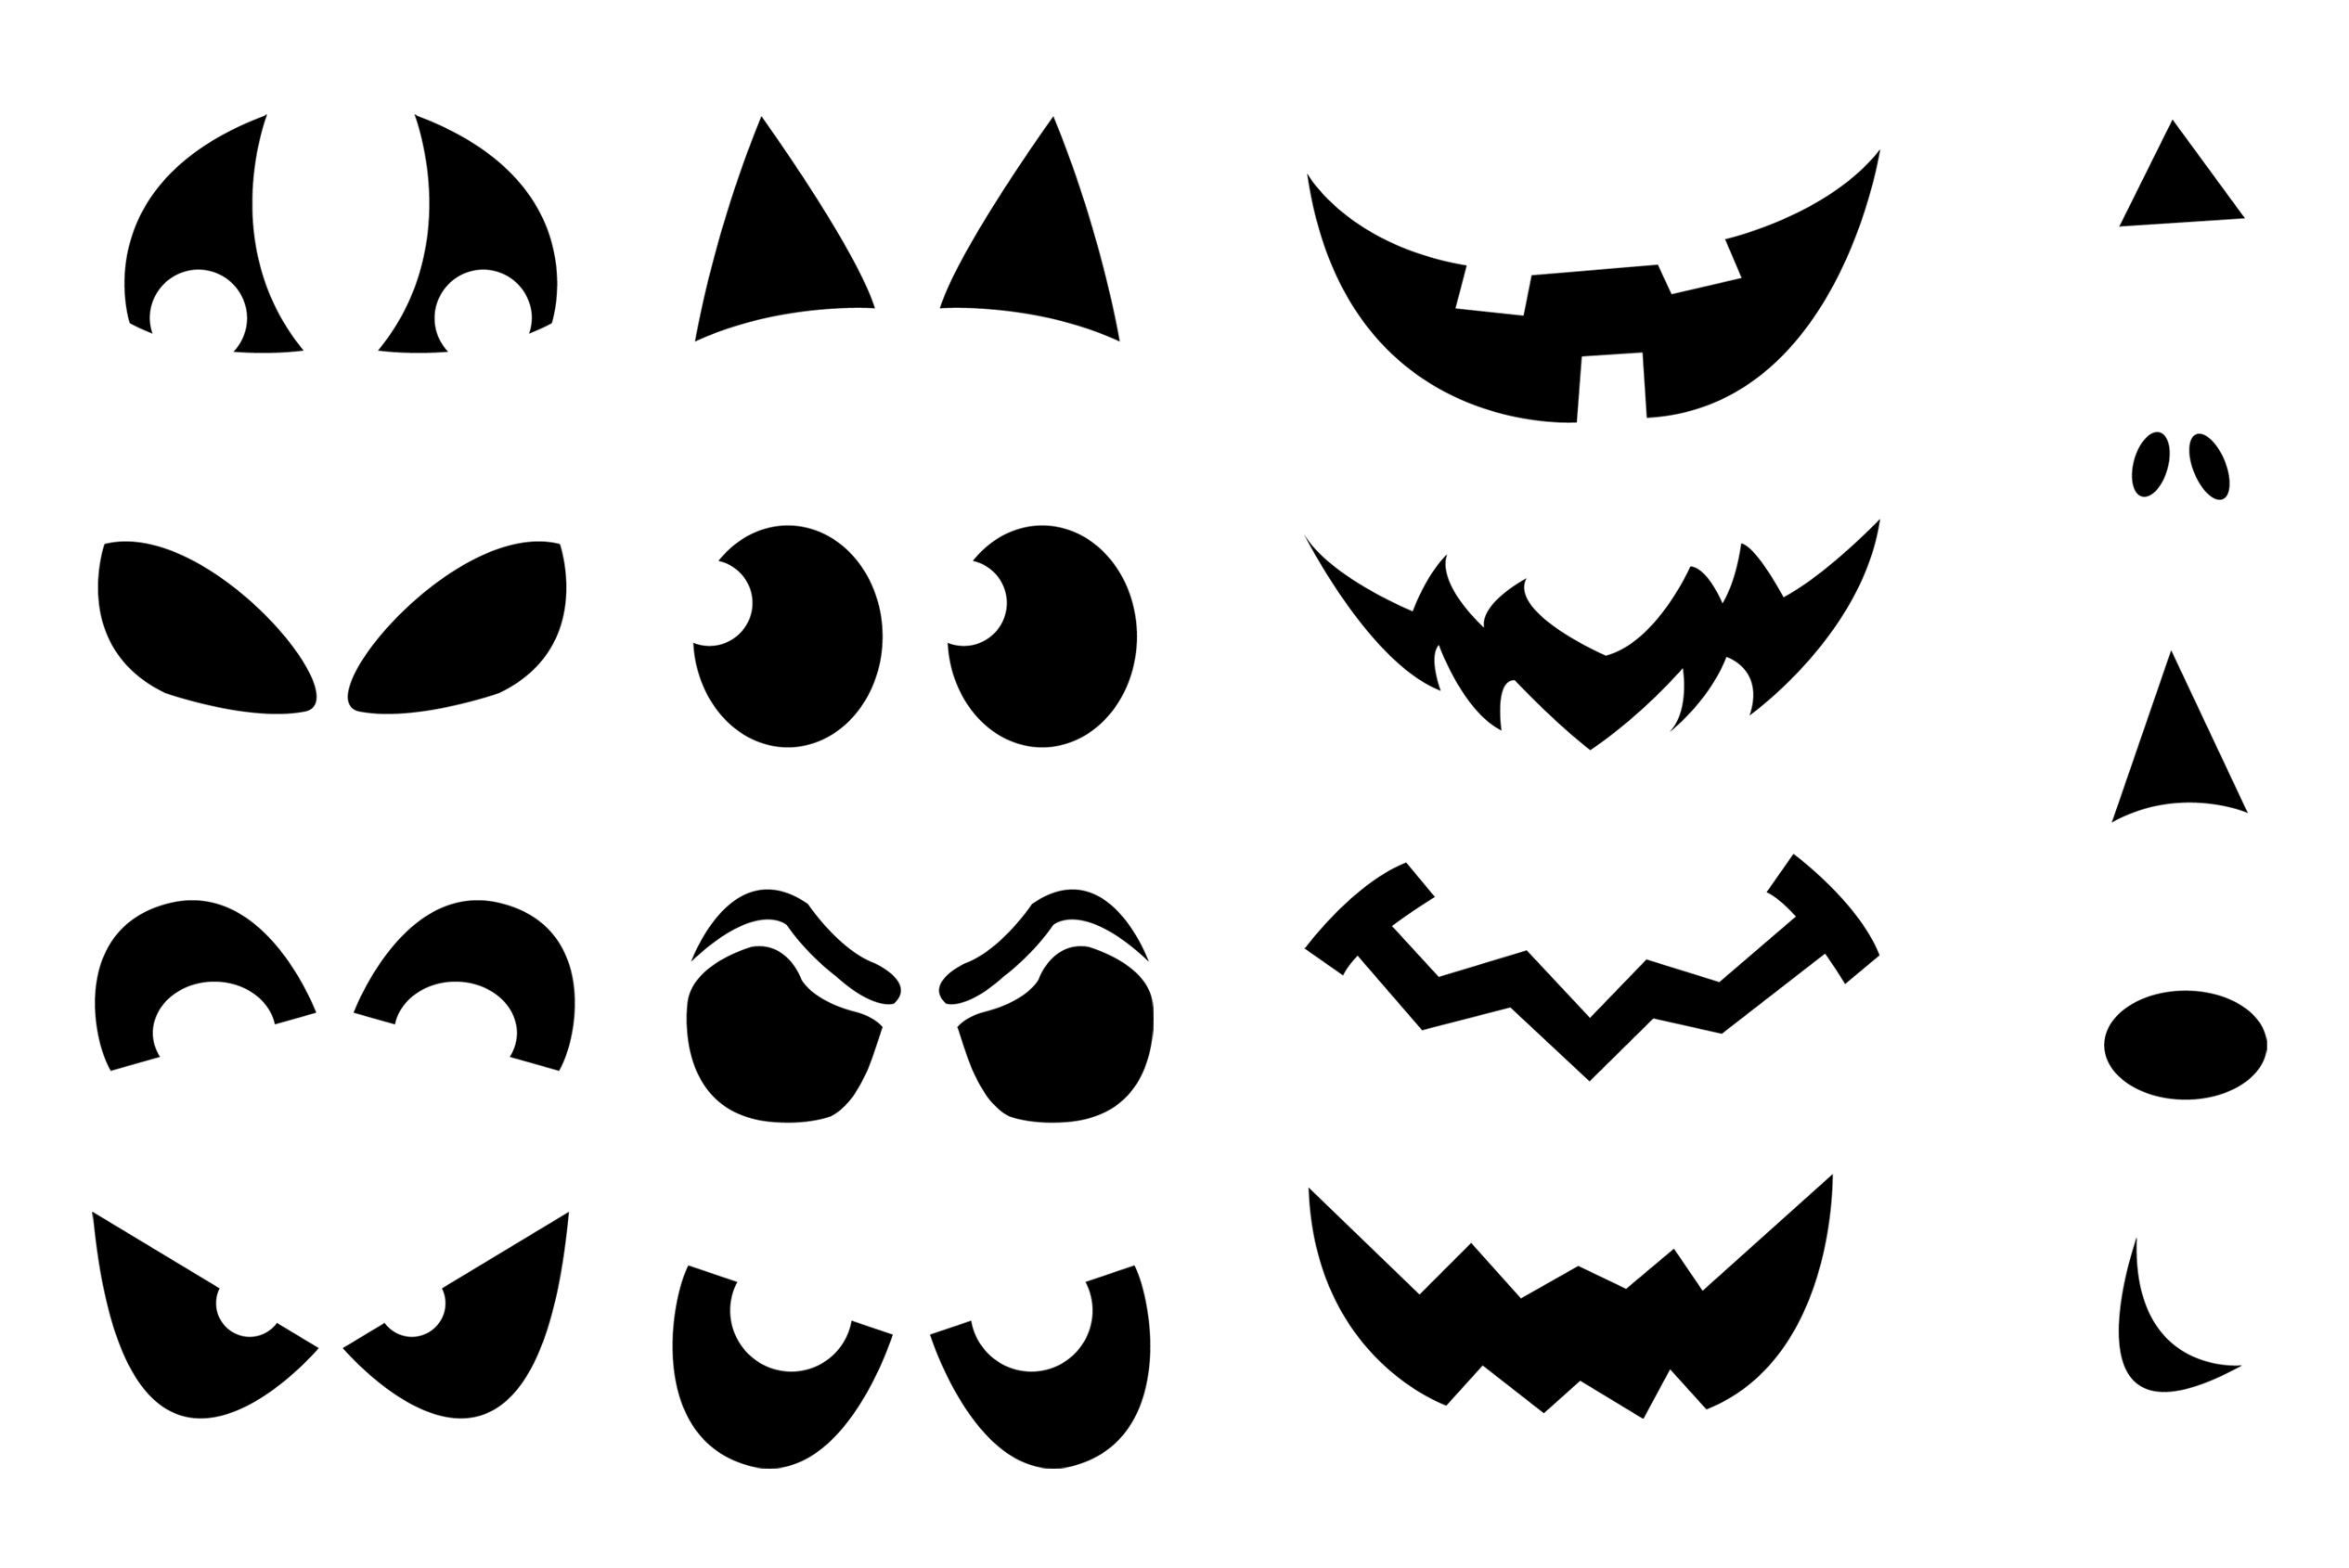 shapes for ghost eye cutouts | After the face is picked out cut out ...